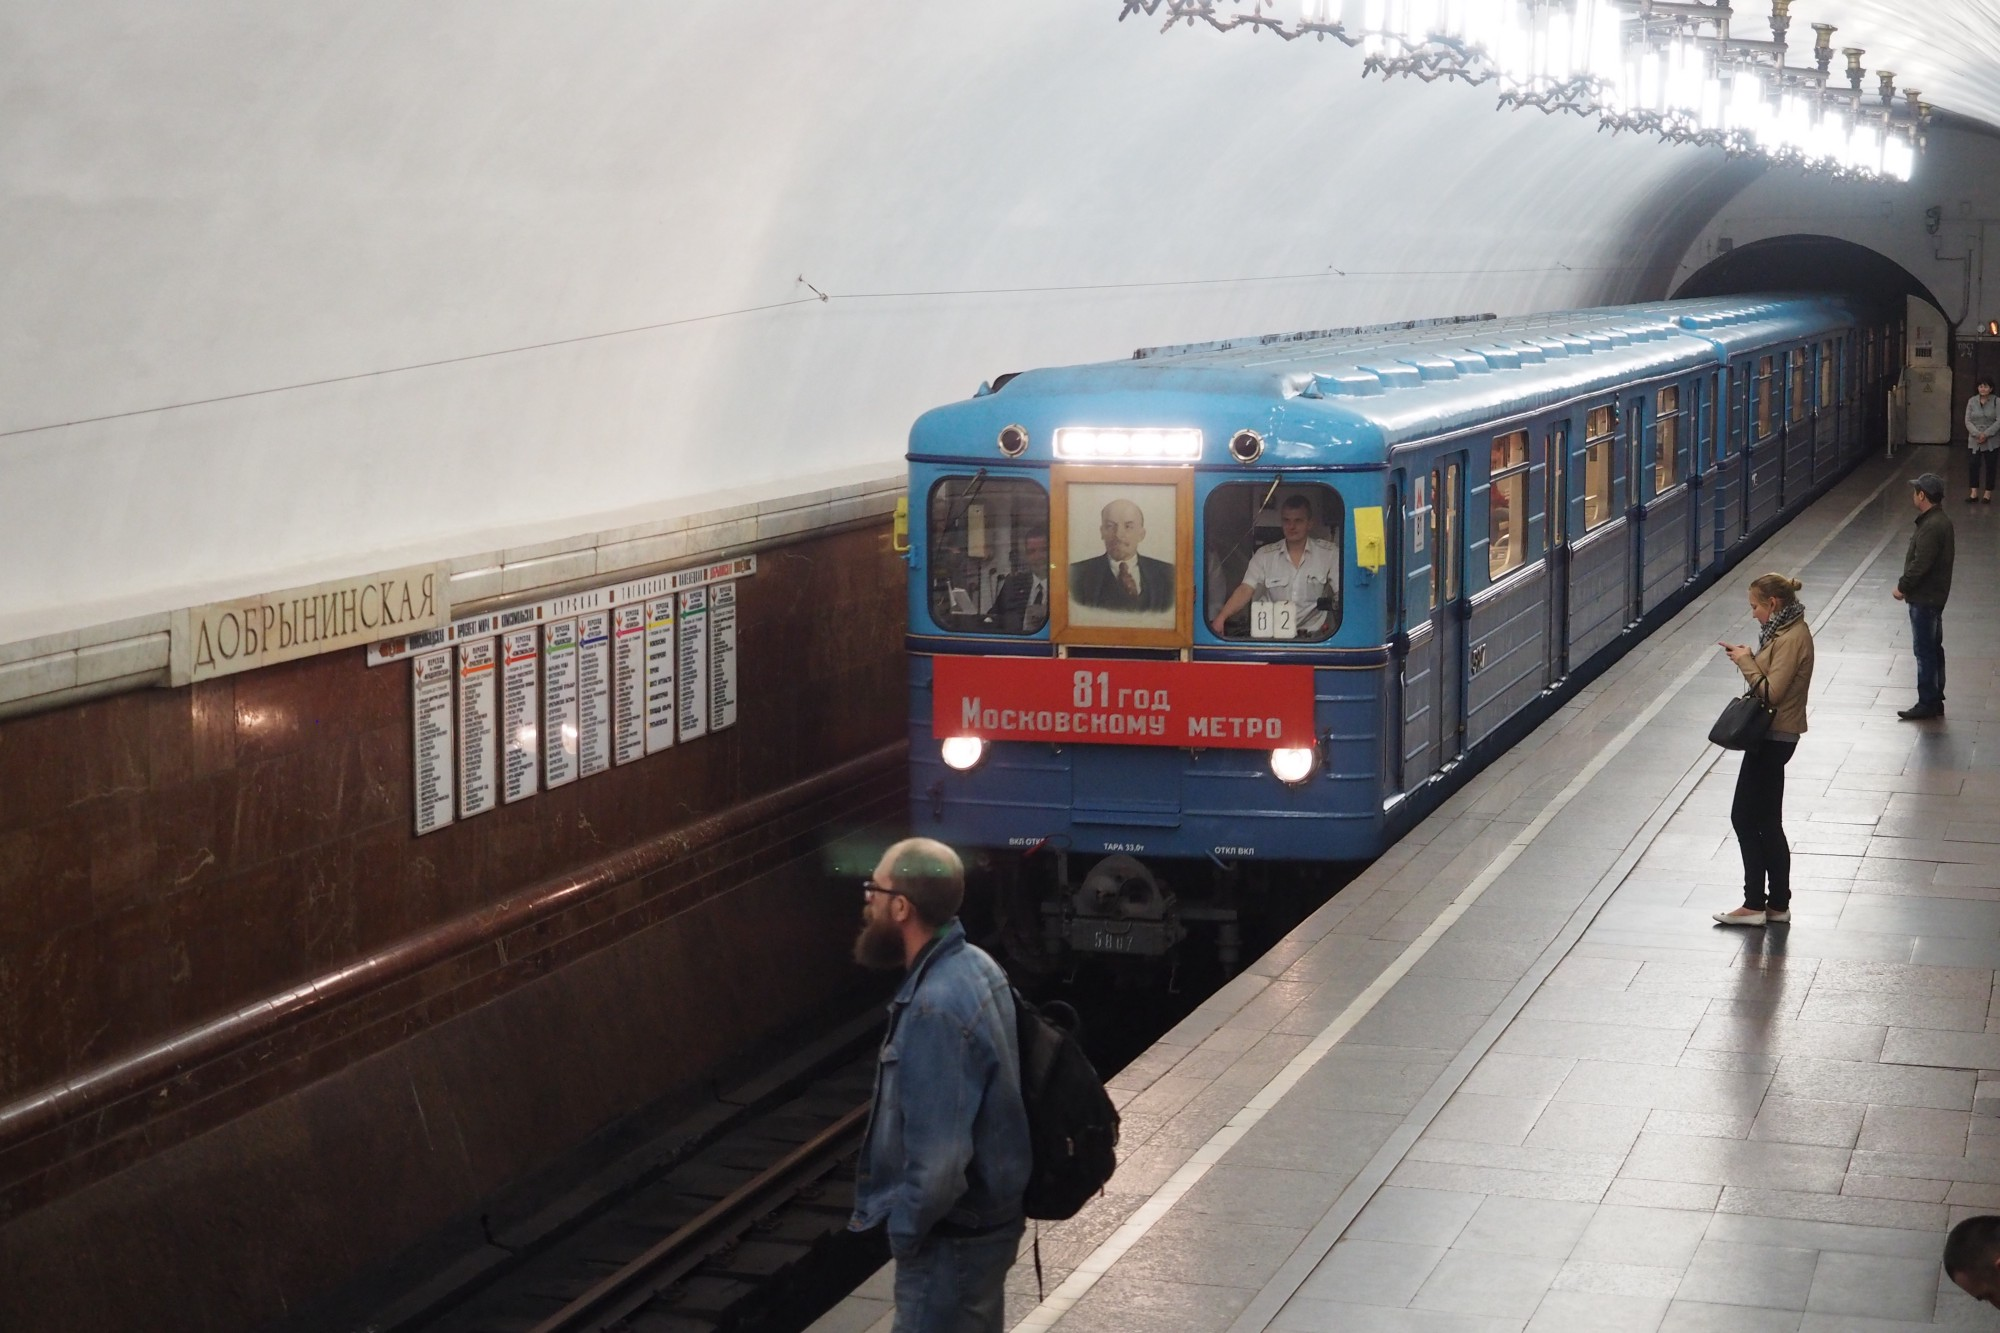 Moscow Metro, 83, Parade of trains 92